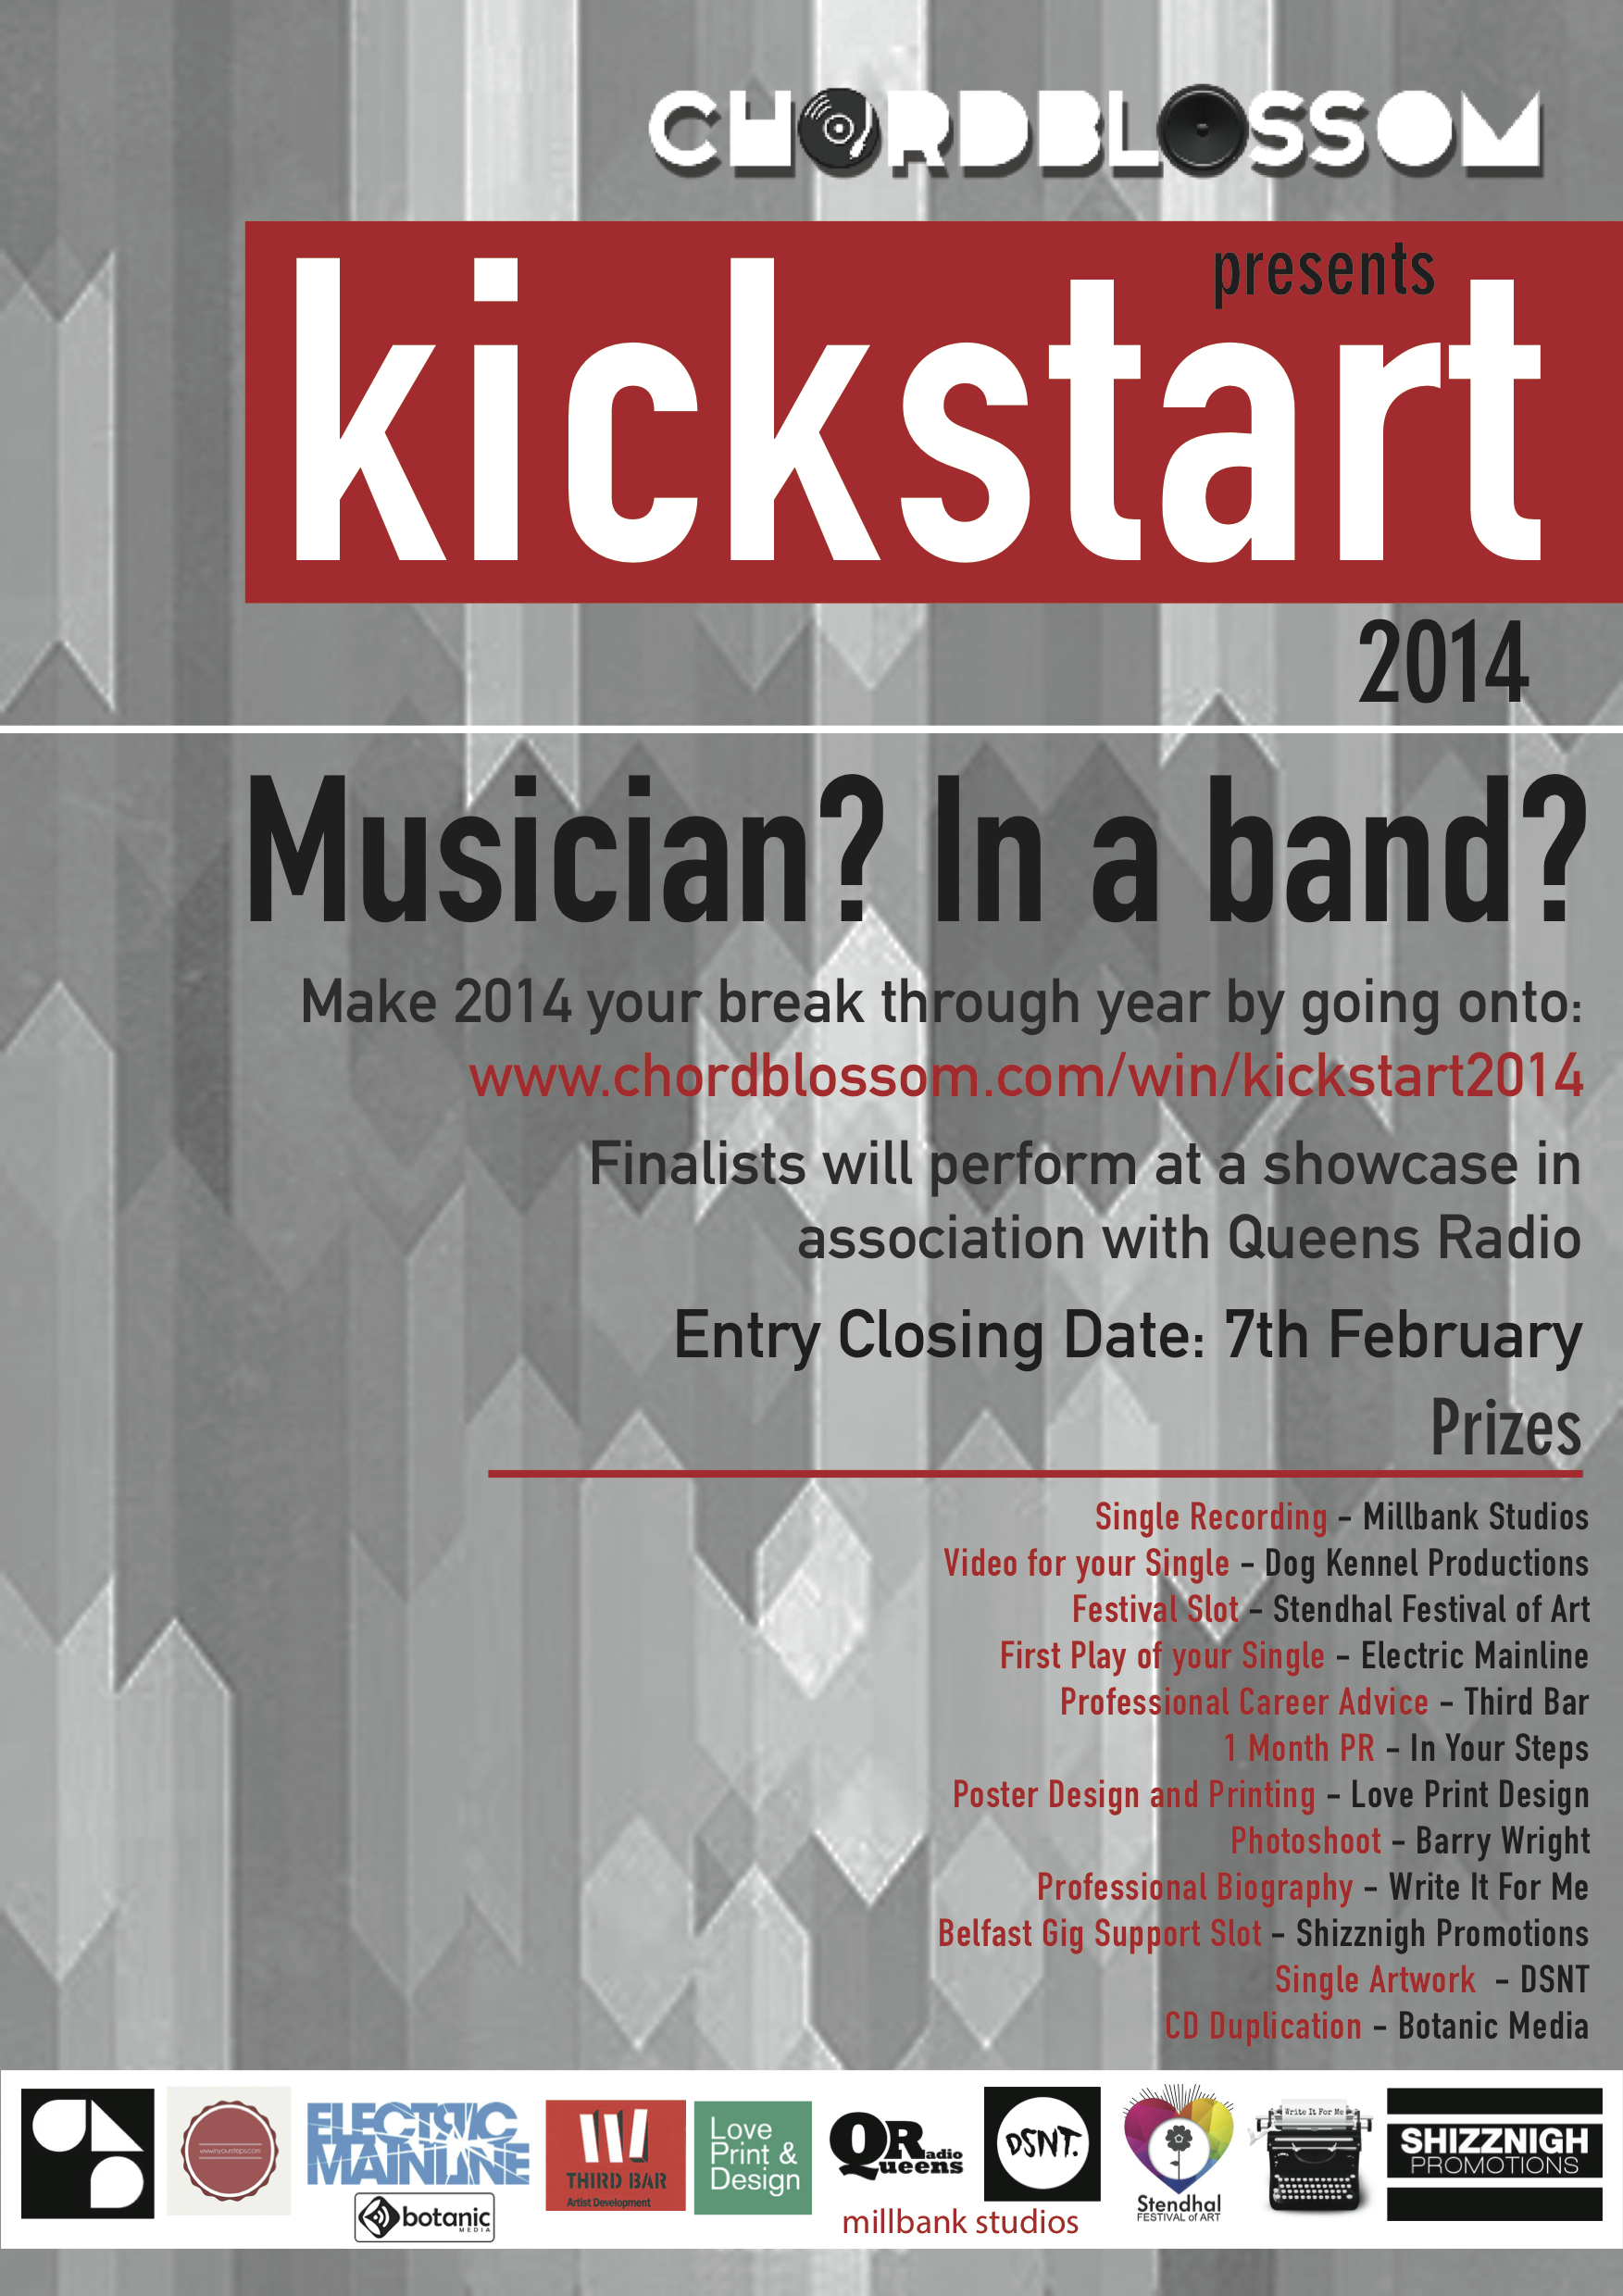 Chordblossom Kickstart 2014 Poster - with Changes:FOR PRINTING